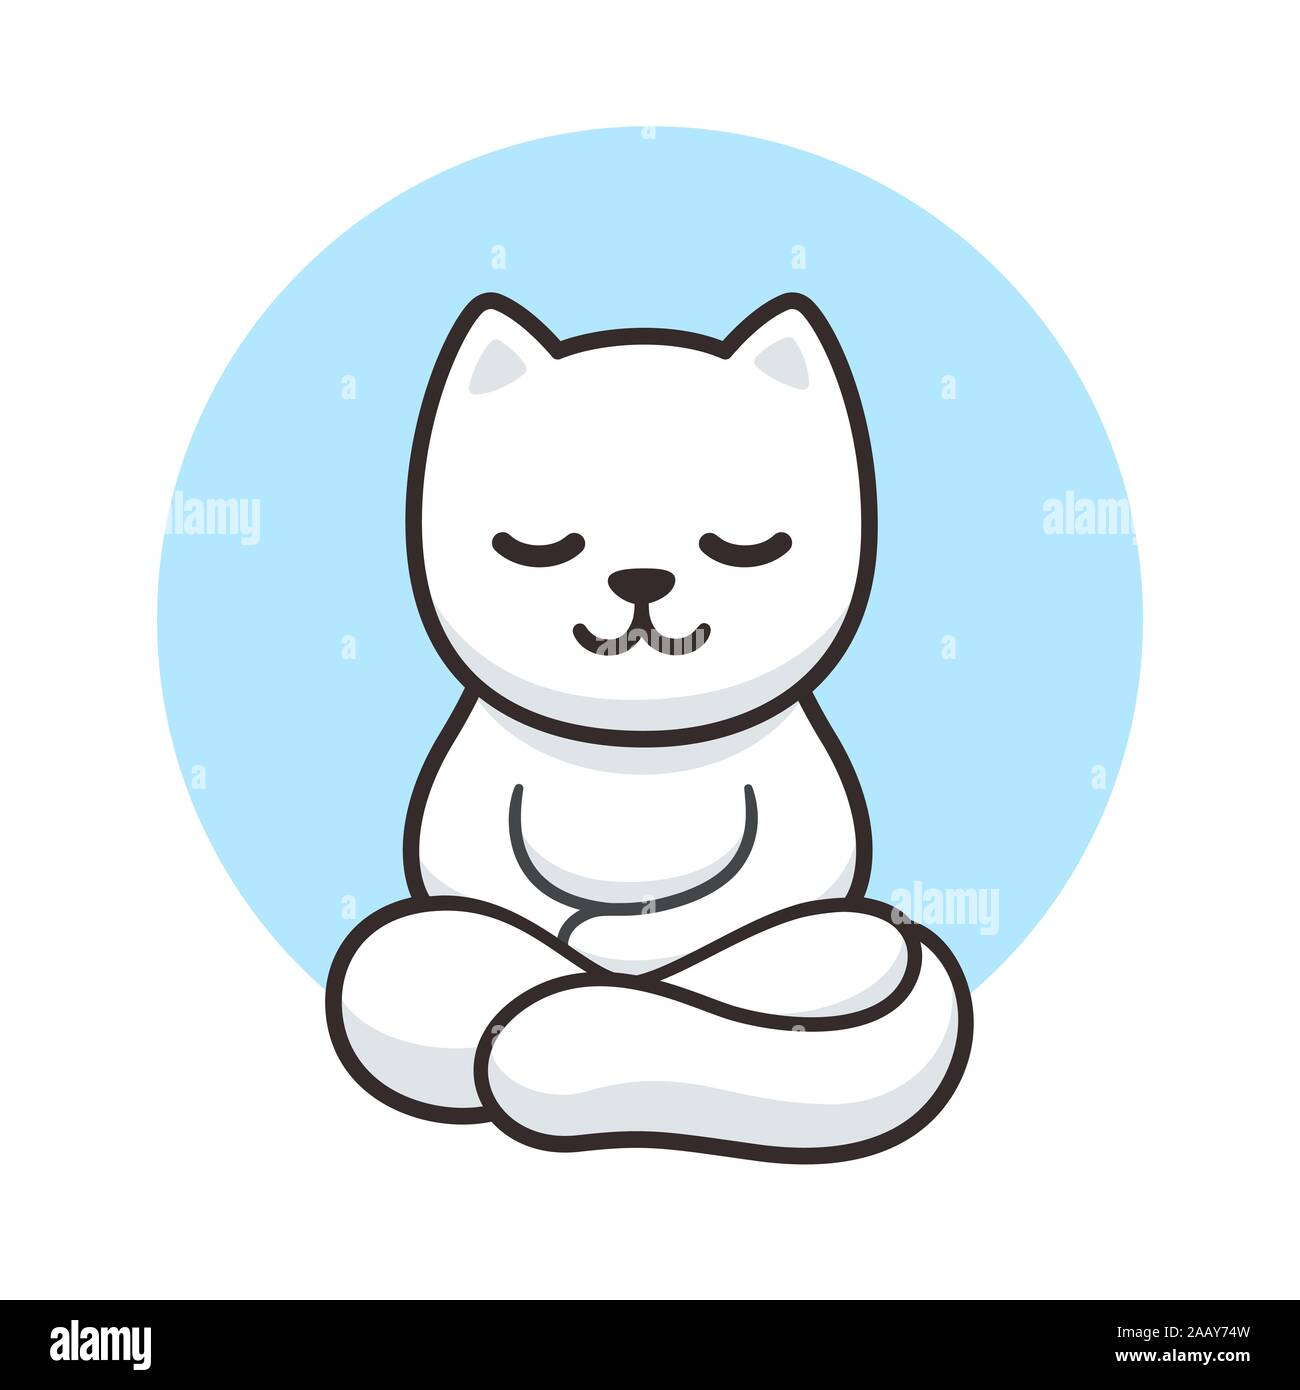 Zen Cat Meditation Simple Cartoon Drawing Cute White Cat Meditating In Lotus Position Vector Clip Art Illustration Stock Vector Image Art Alamy